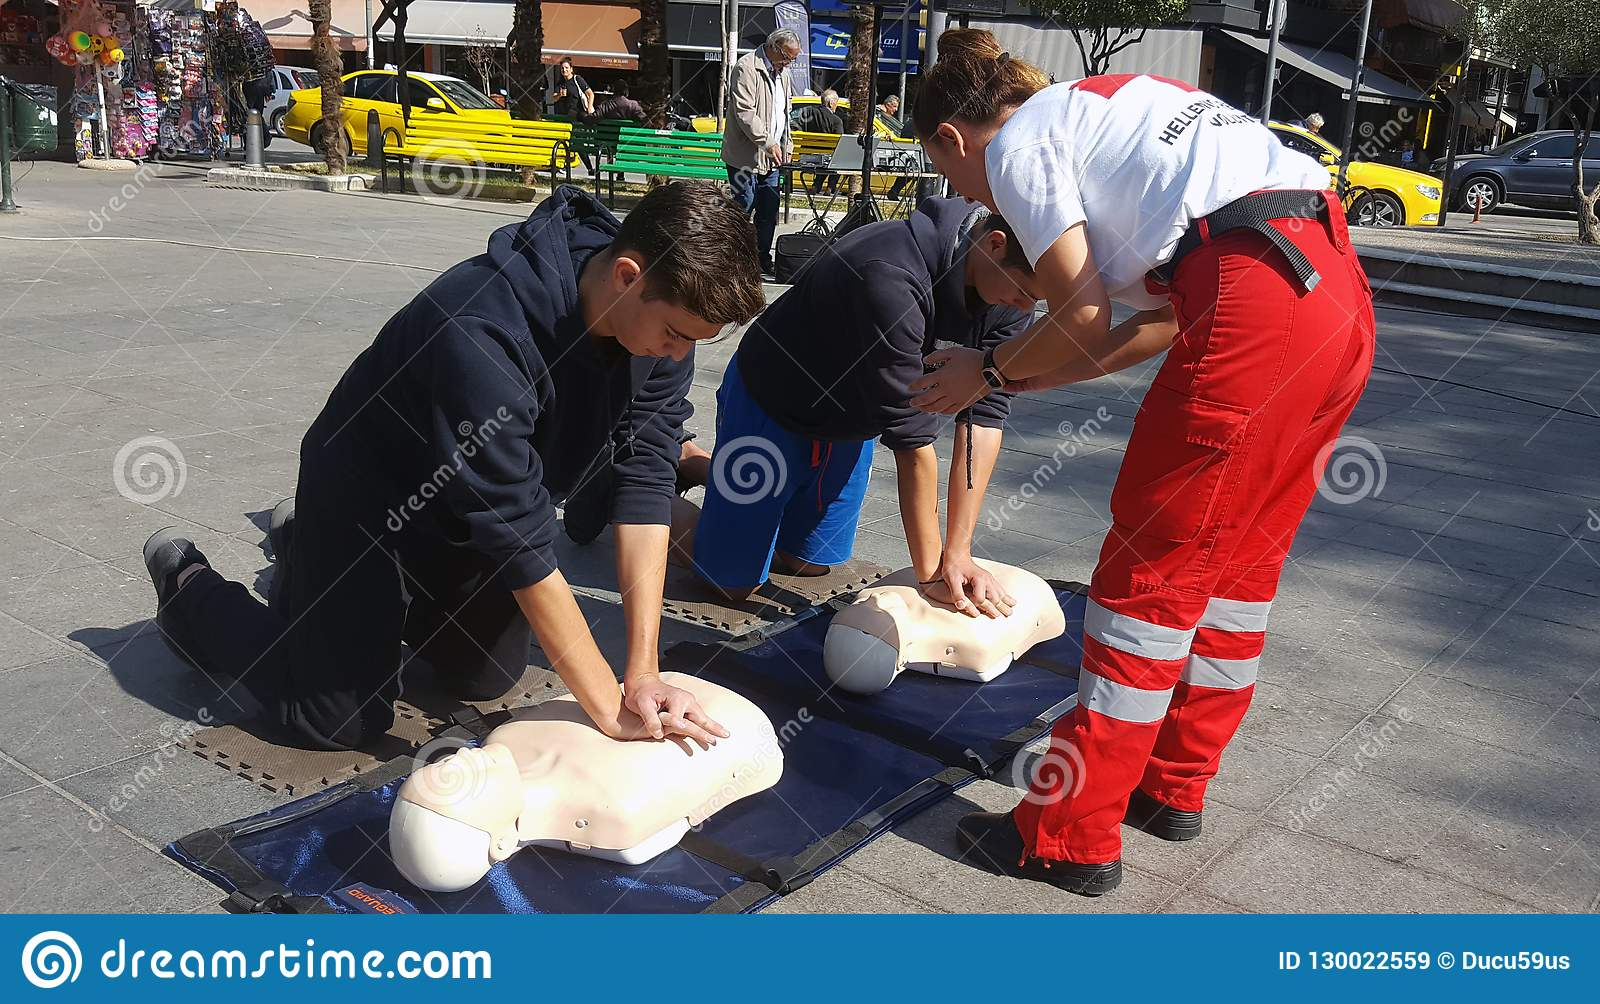 KATERINI, GREECE - OCTOBER 17 2018: The instructor of Red Cross showing CPR on training doll